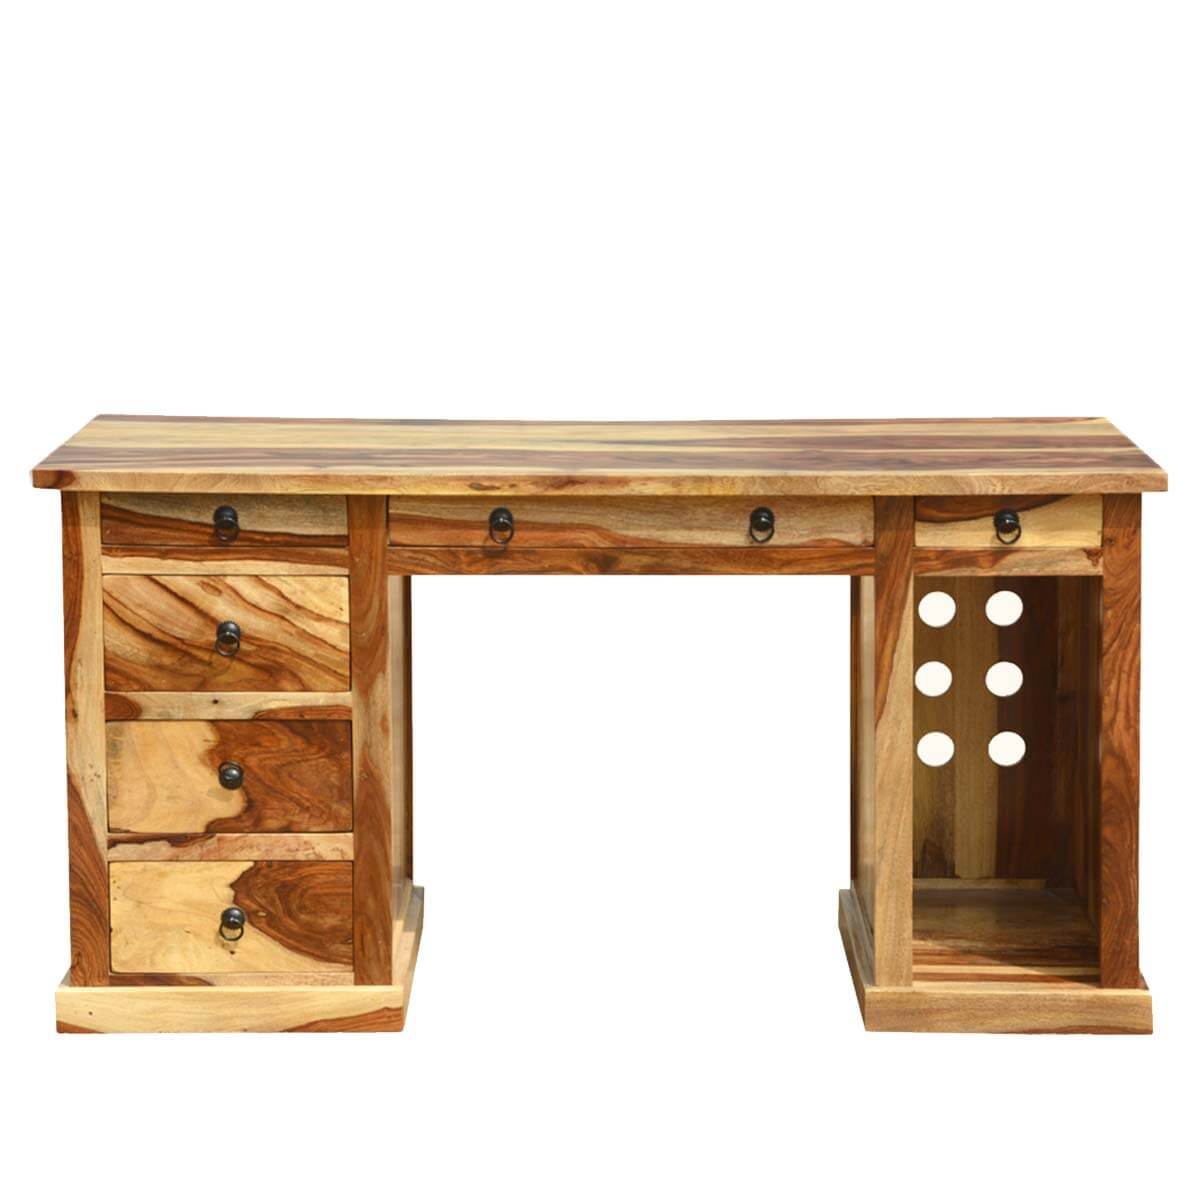 Rustic Americana Hardwood Executive Desk Home Office: Dallas Ranch Solid Wood Contemporary Home Office Executive